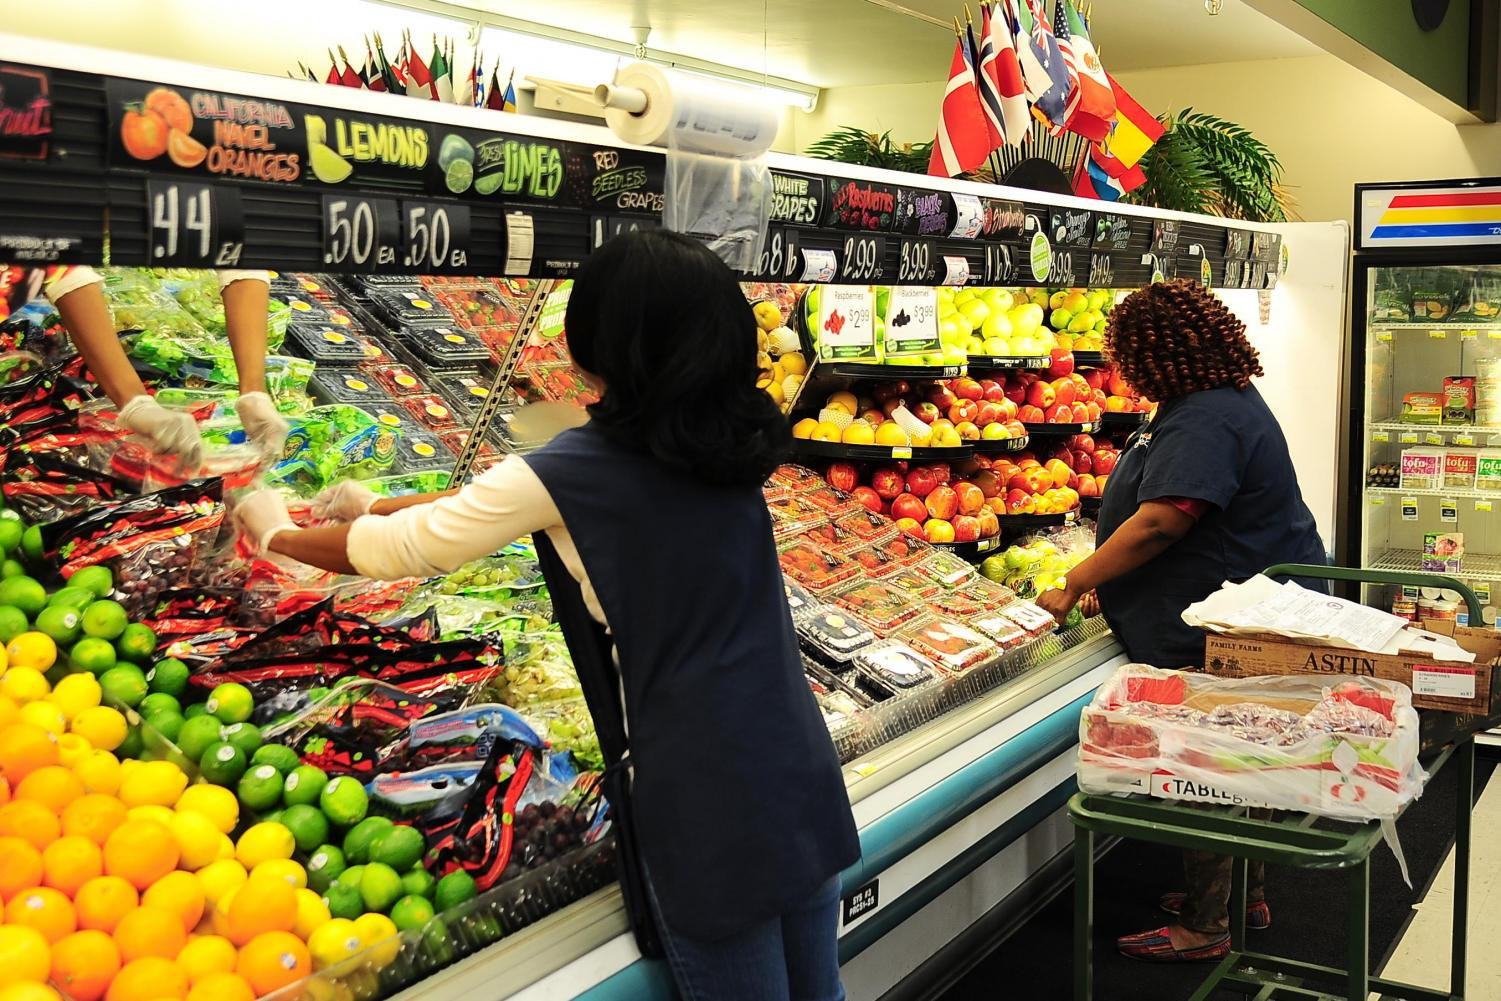 Cooperative food markets have had an unsuccessful run in Boston. Most residents fulfill their grocery needs by shopping at major grocery stores like Stop & Shop, Whole Foods and Target.